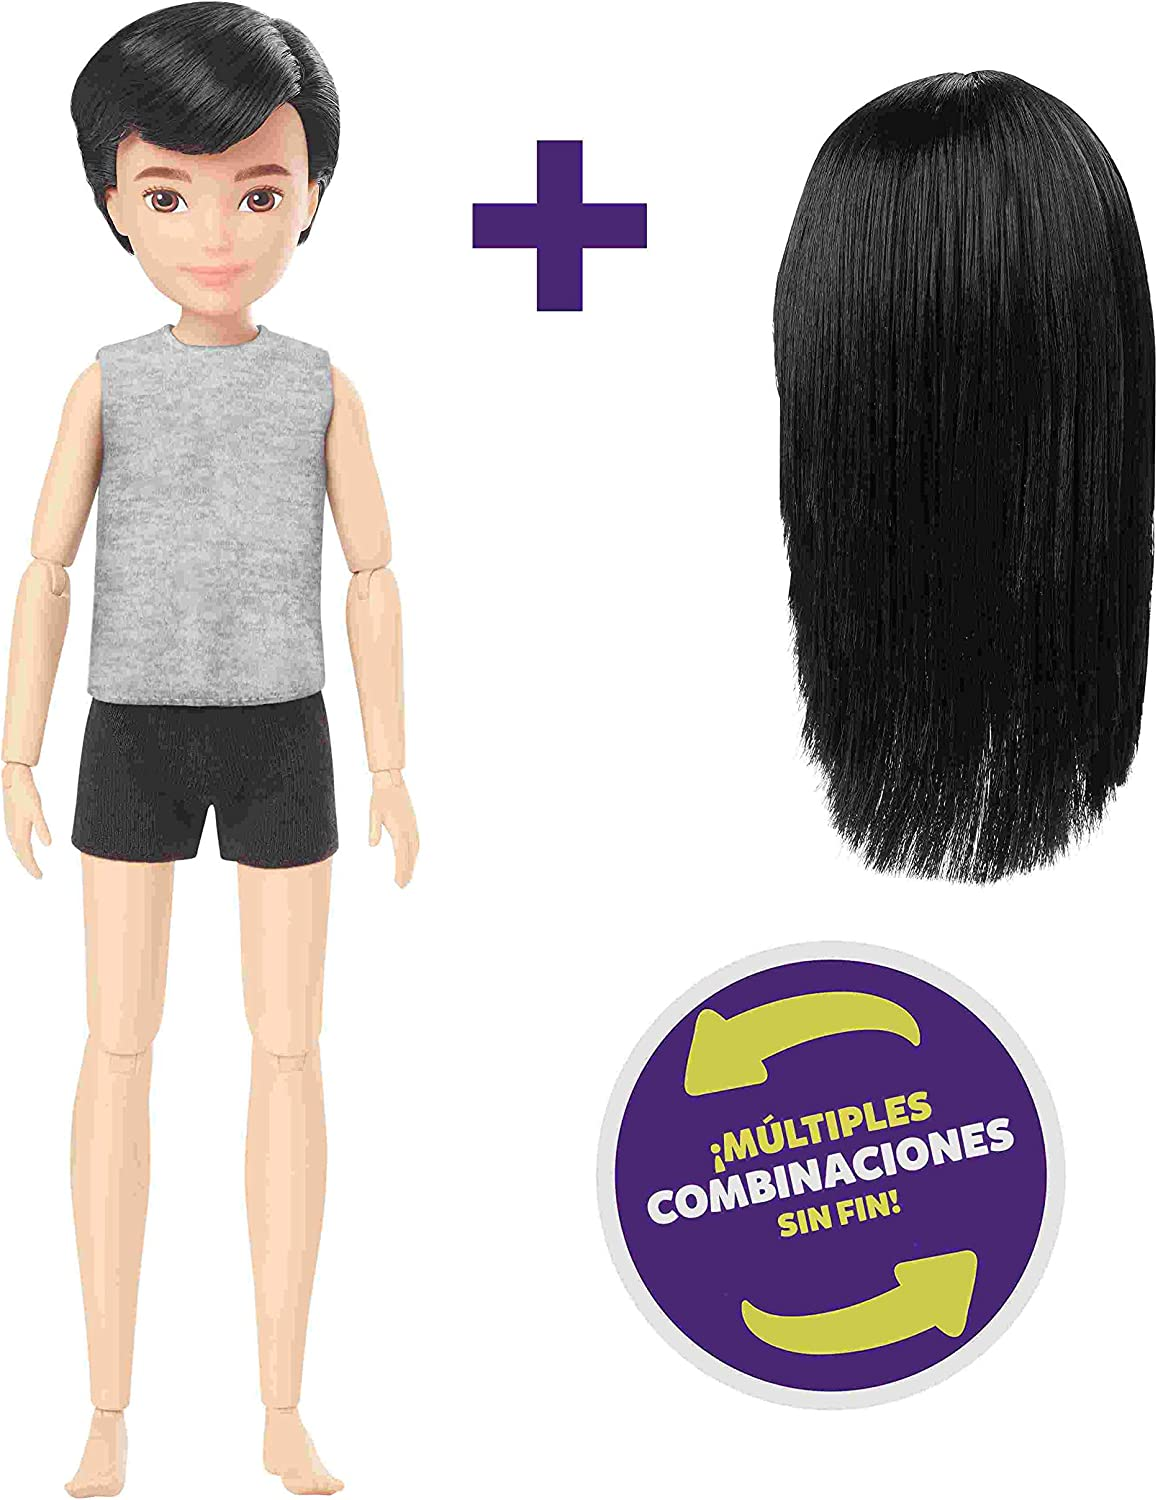 Amazon.es: Creatable World - Pack de personajes, cabello moreno ...